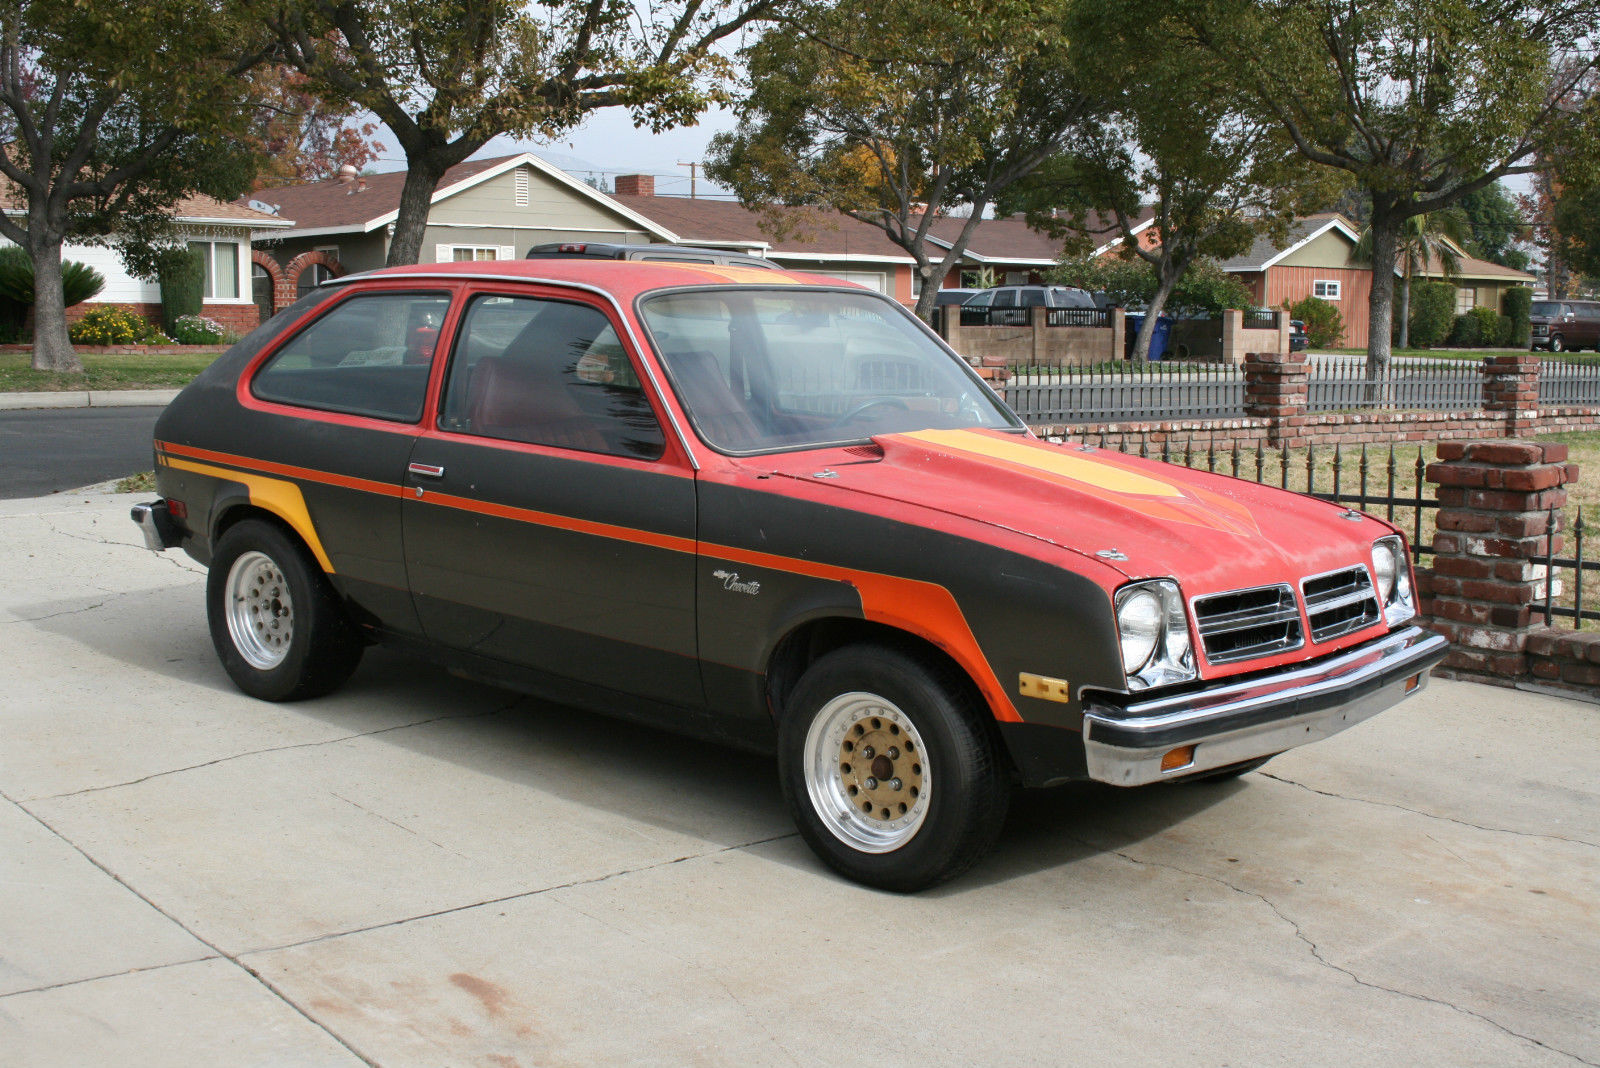 1976 Chevy Chevette Hooker Headers Project Car Hot Rod Magazine Drag Car Gasser For Sale In